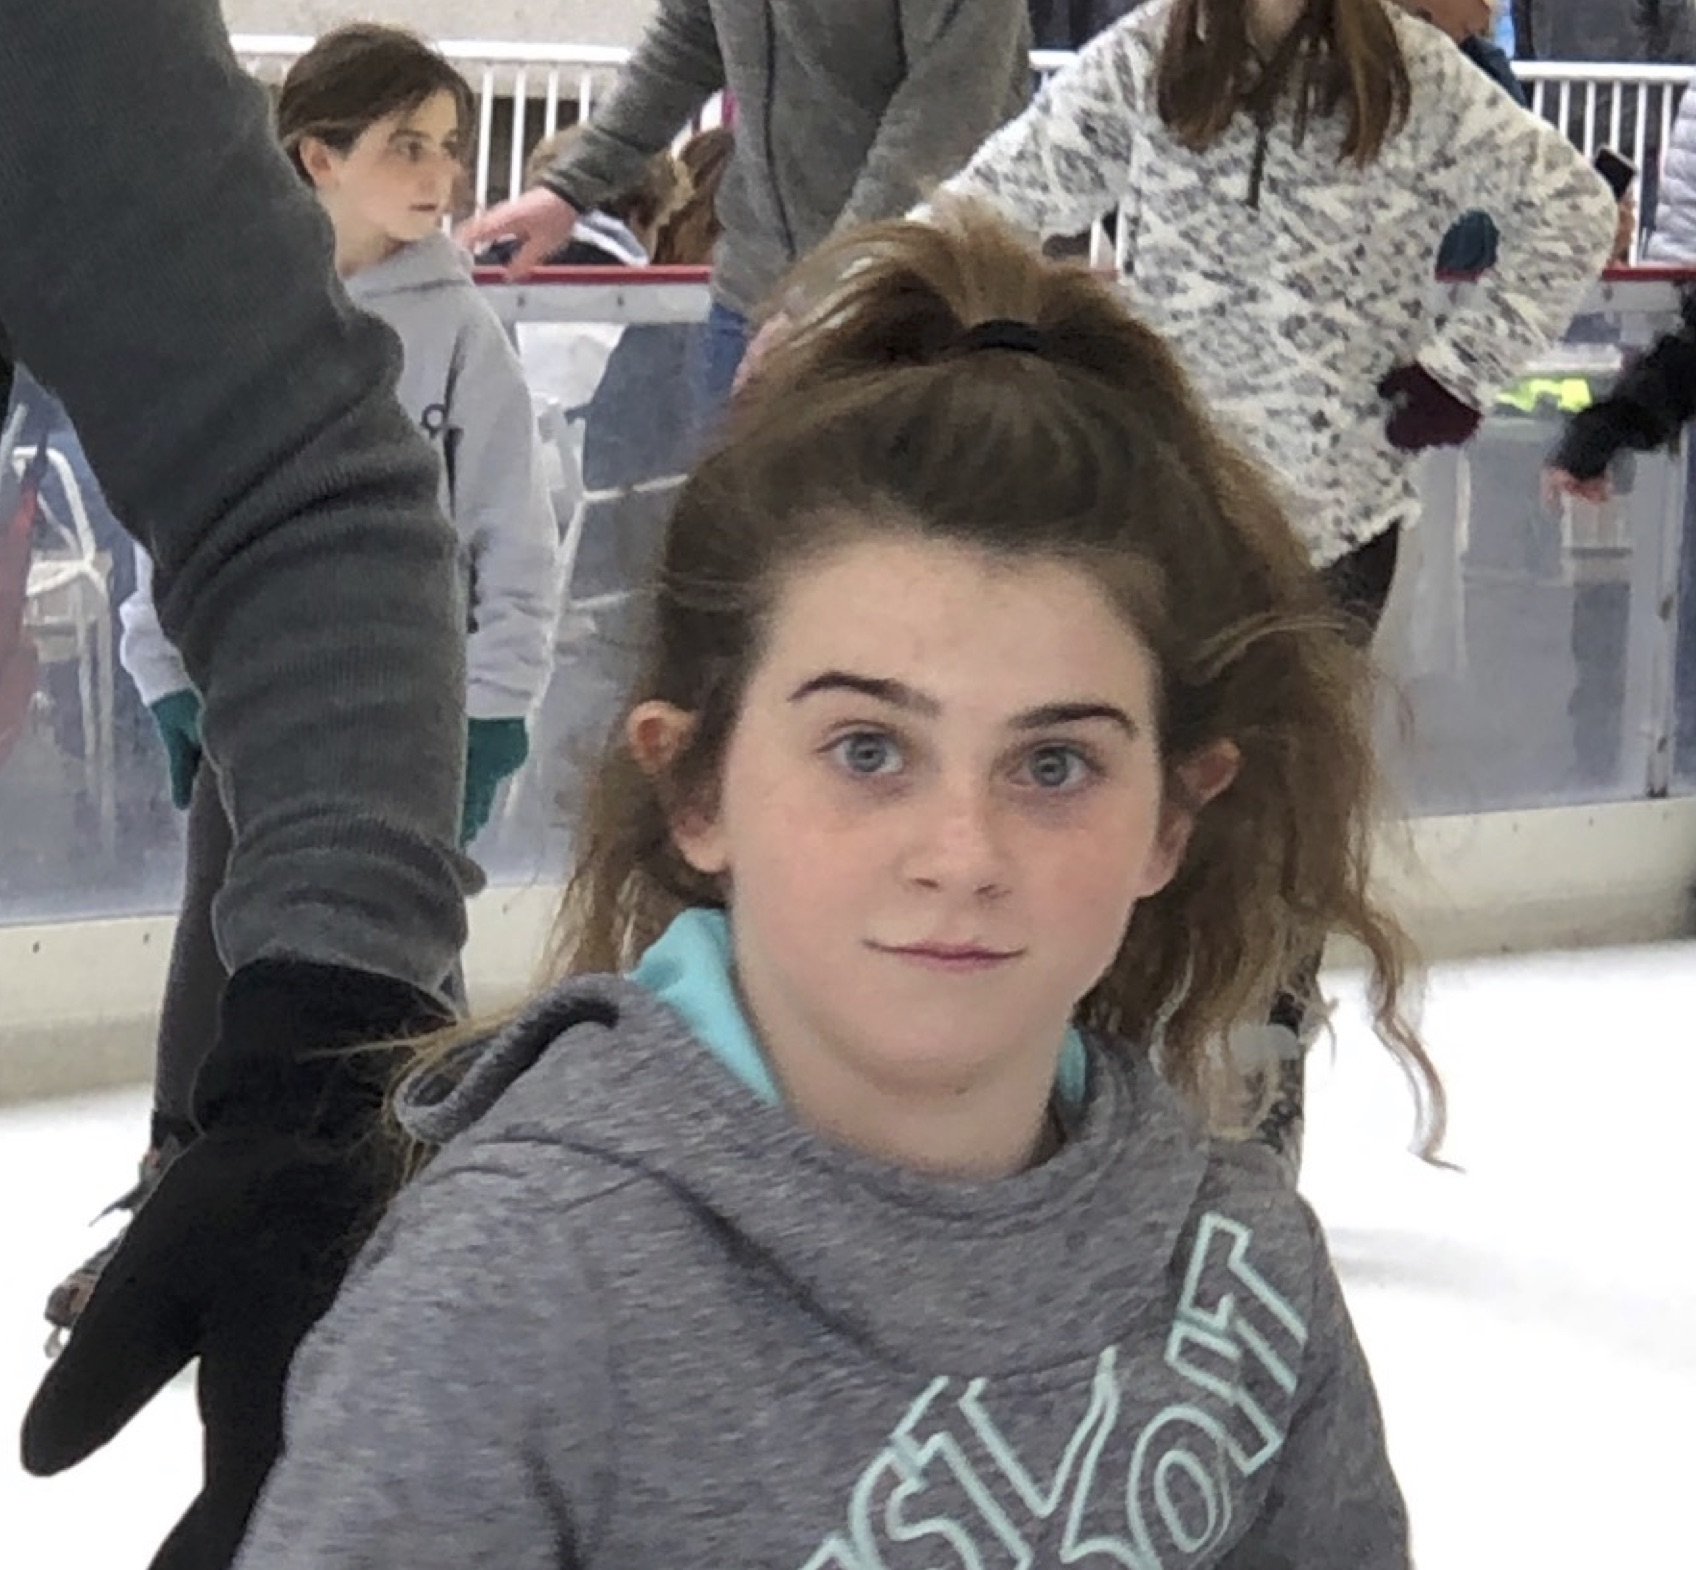 Lilly went ice-skating with friends and family at Crown Center. Ice skating takes balance and courage, both of which you obviously have. Surprised by the camera, I see you were having a blast! And, I see your twin sister, Sandy, in the background too. Thank you for sharing, Lilly!